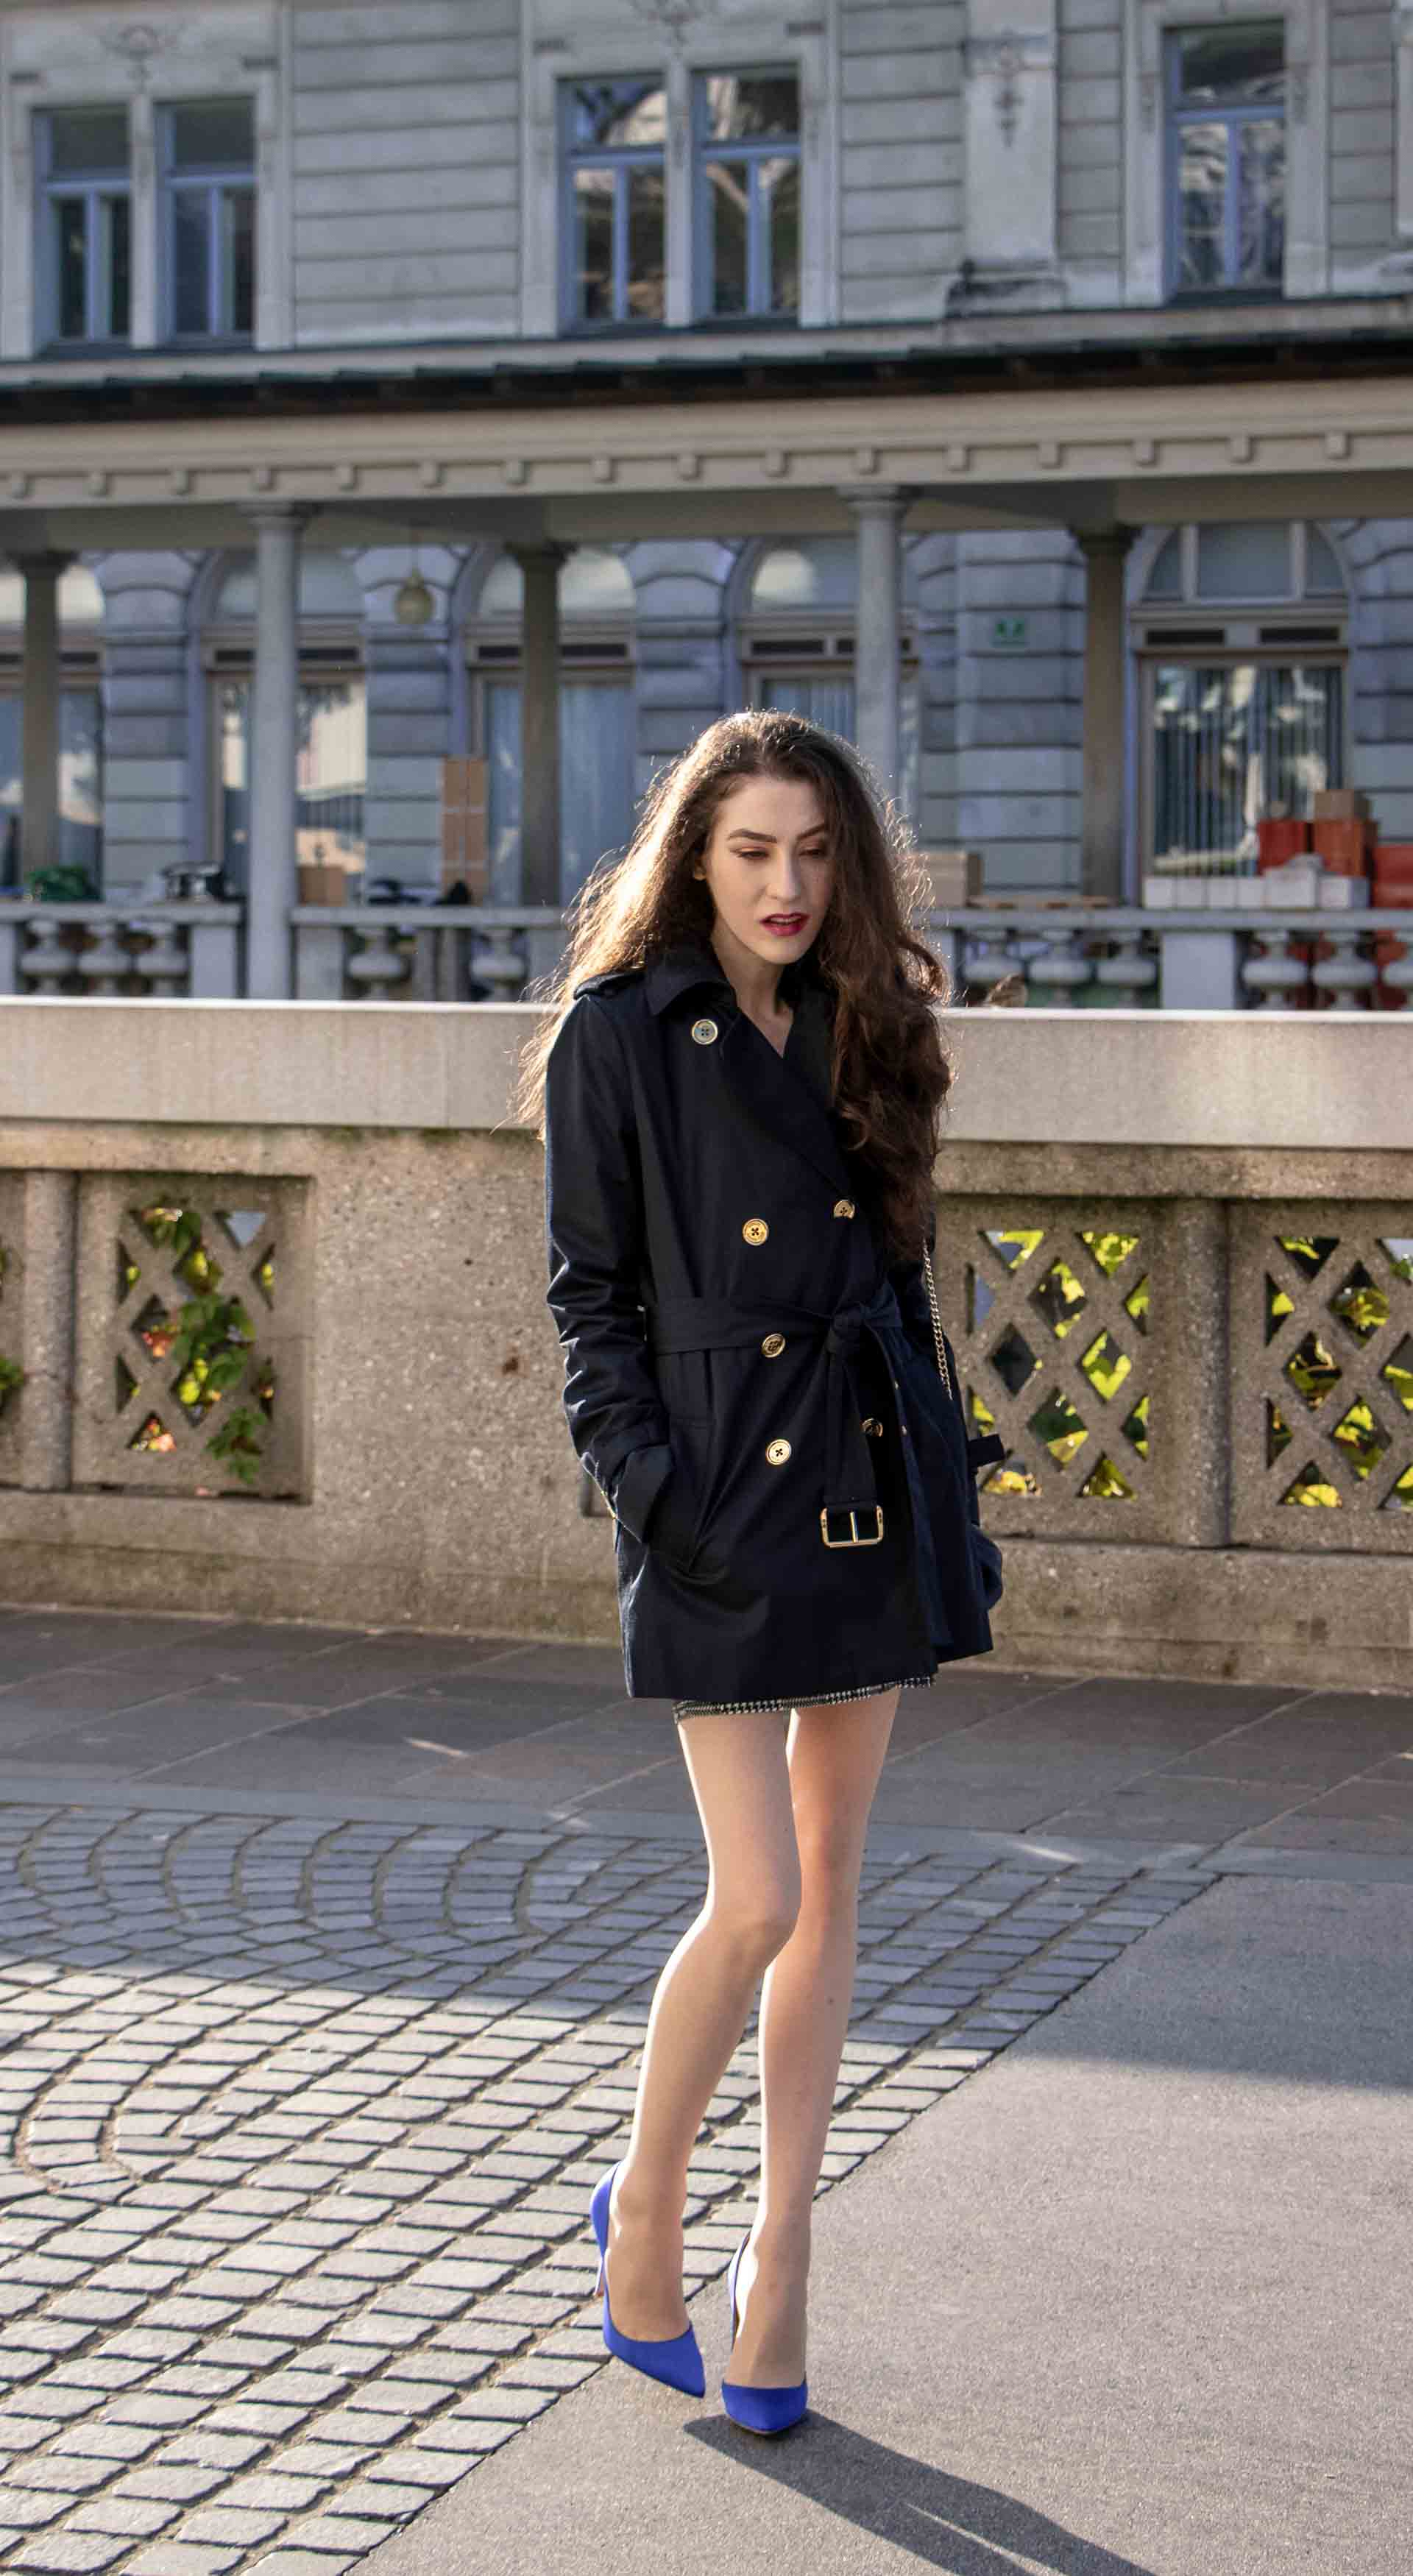 Beautiful Slovenian Fashion Blogger Veronika Lipar of Brunette from Wall wearing dark navy Michael Kors short trench coat, Gianvito Rossi blue satin court shoes, white chain shoulder bag after clubbing